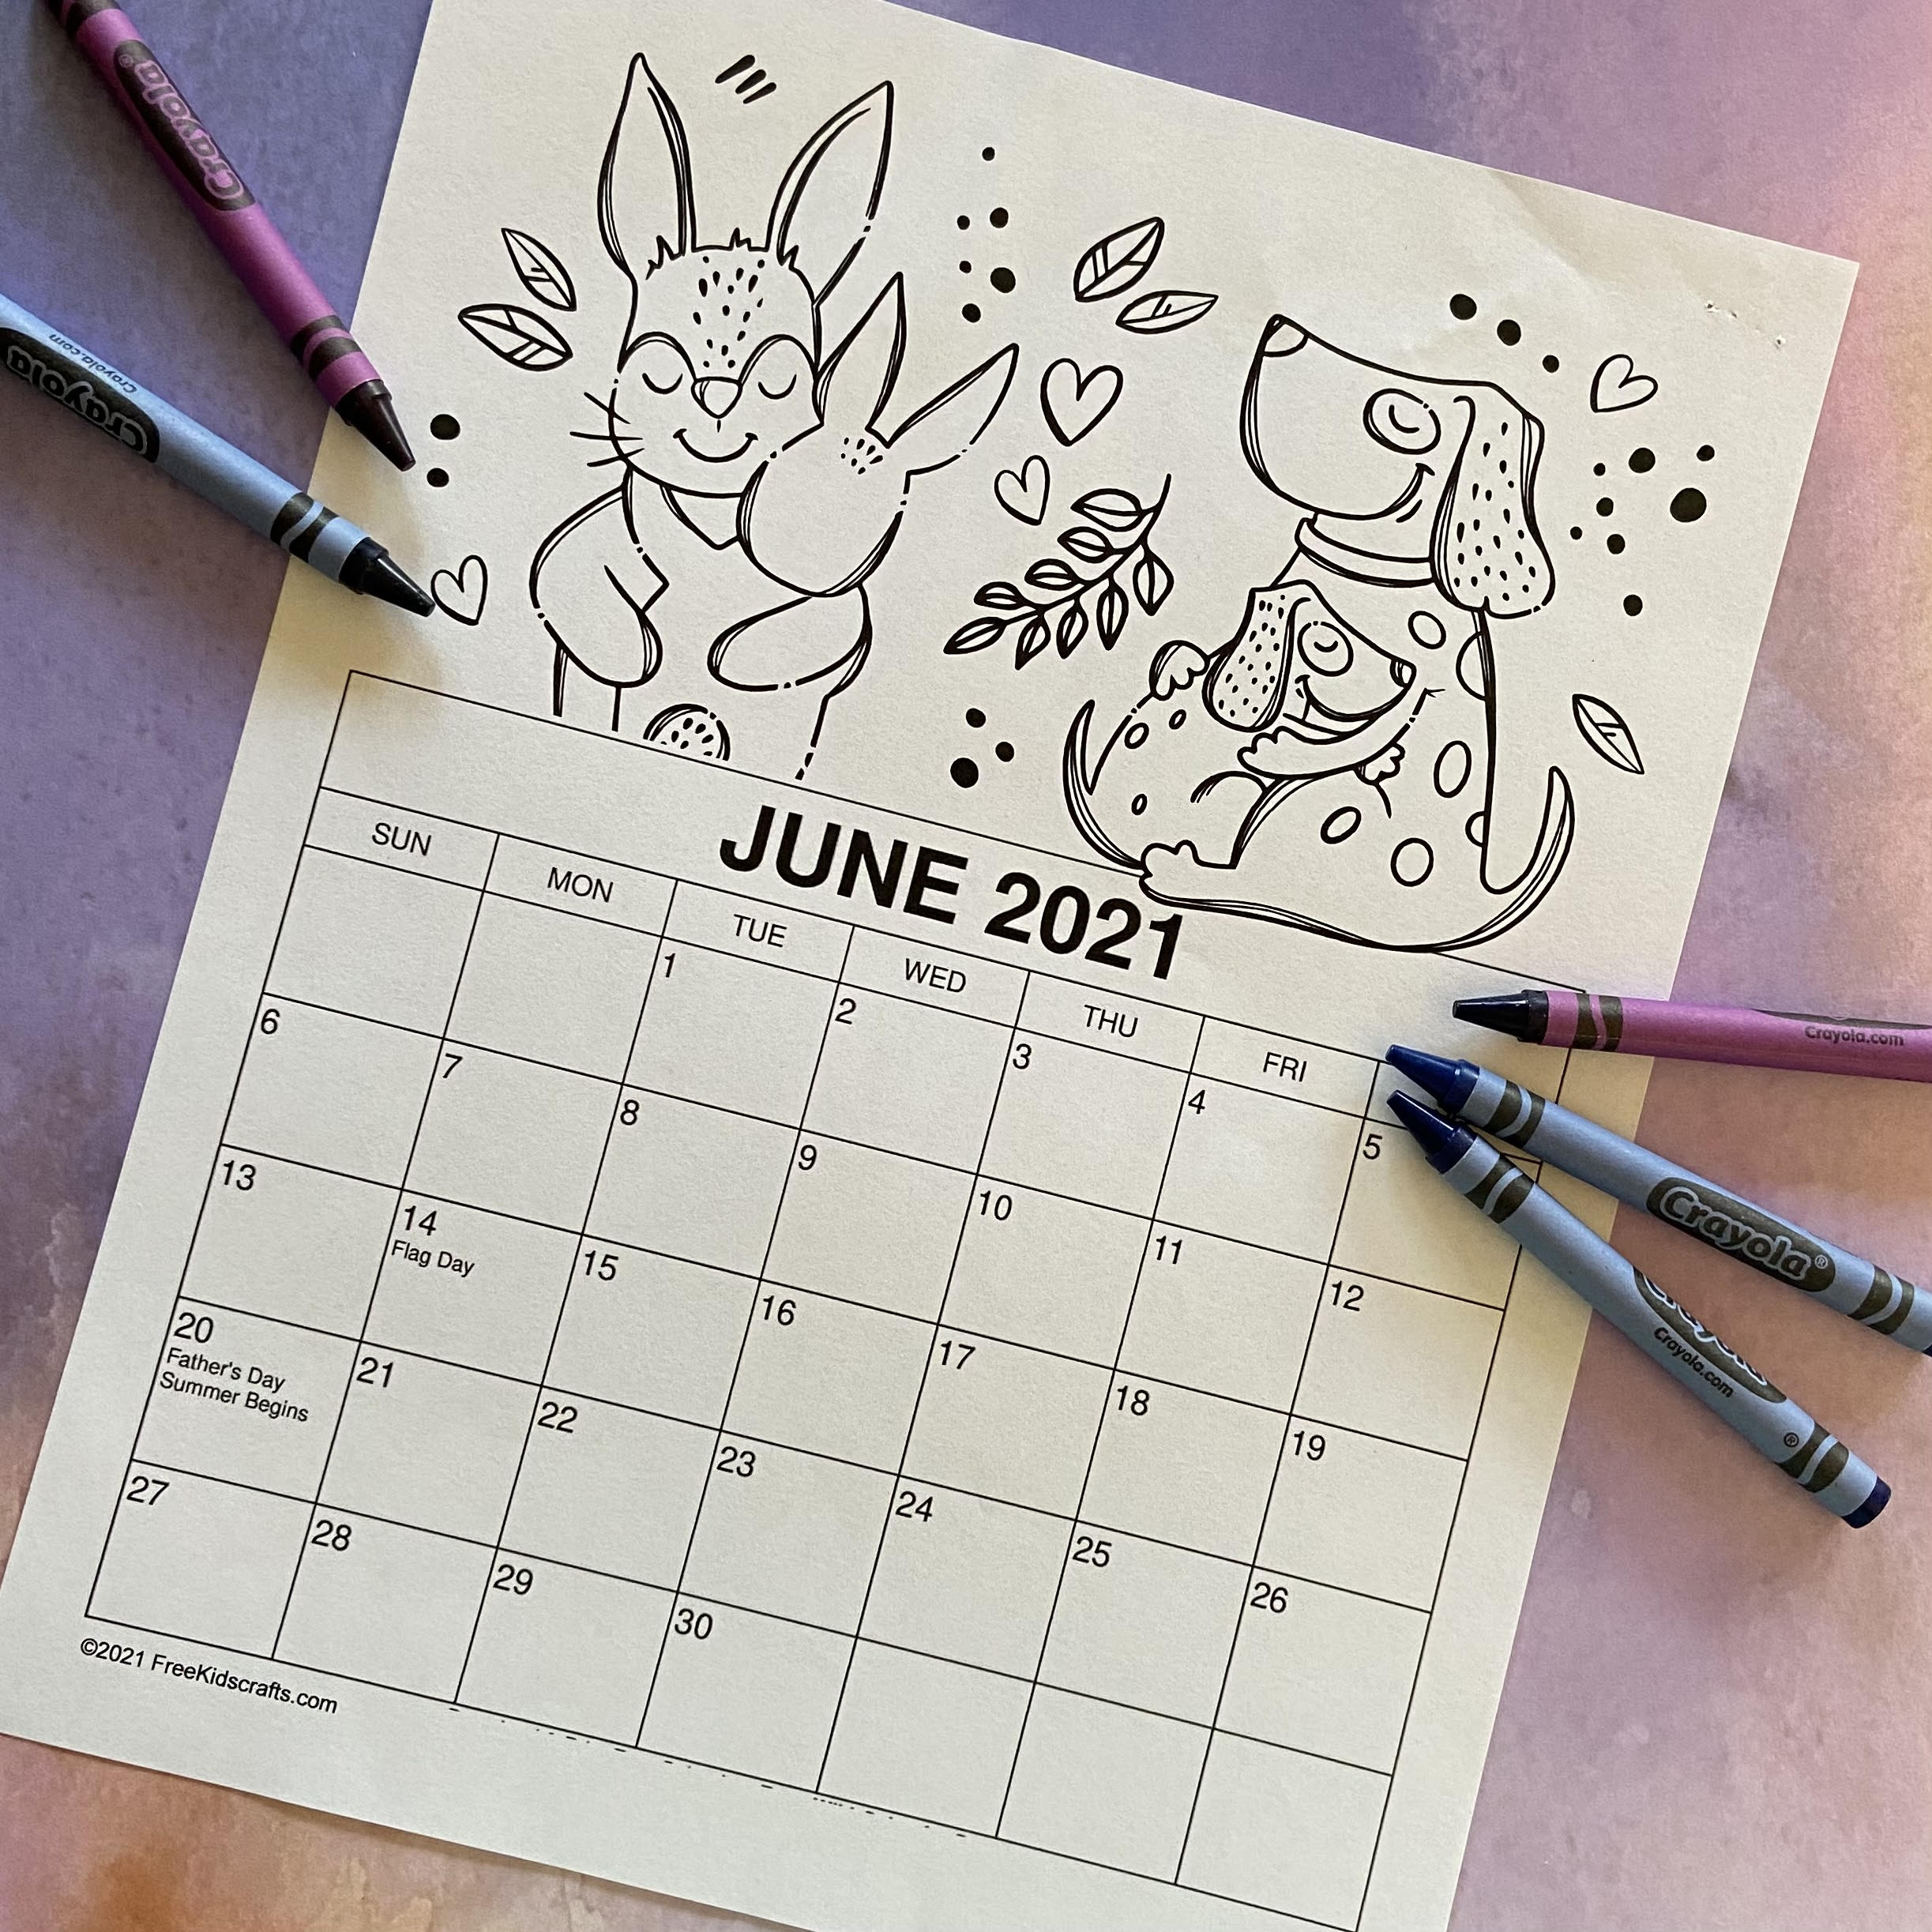 JUNE CALENDAR FOR KIDS TO USE AND COLOR